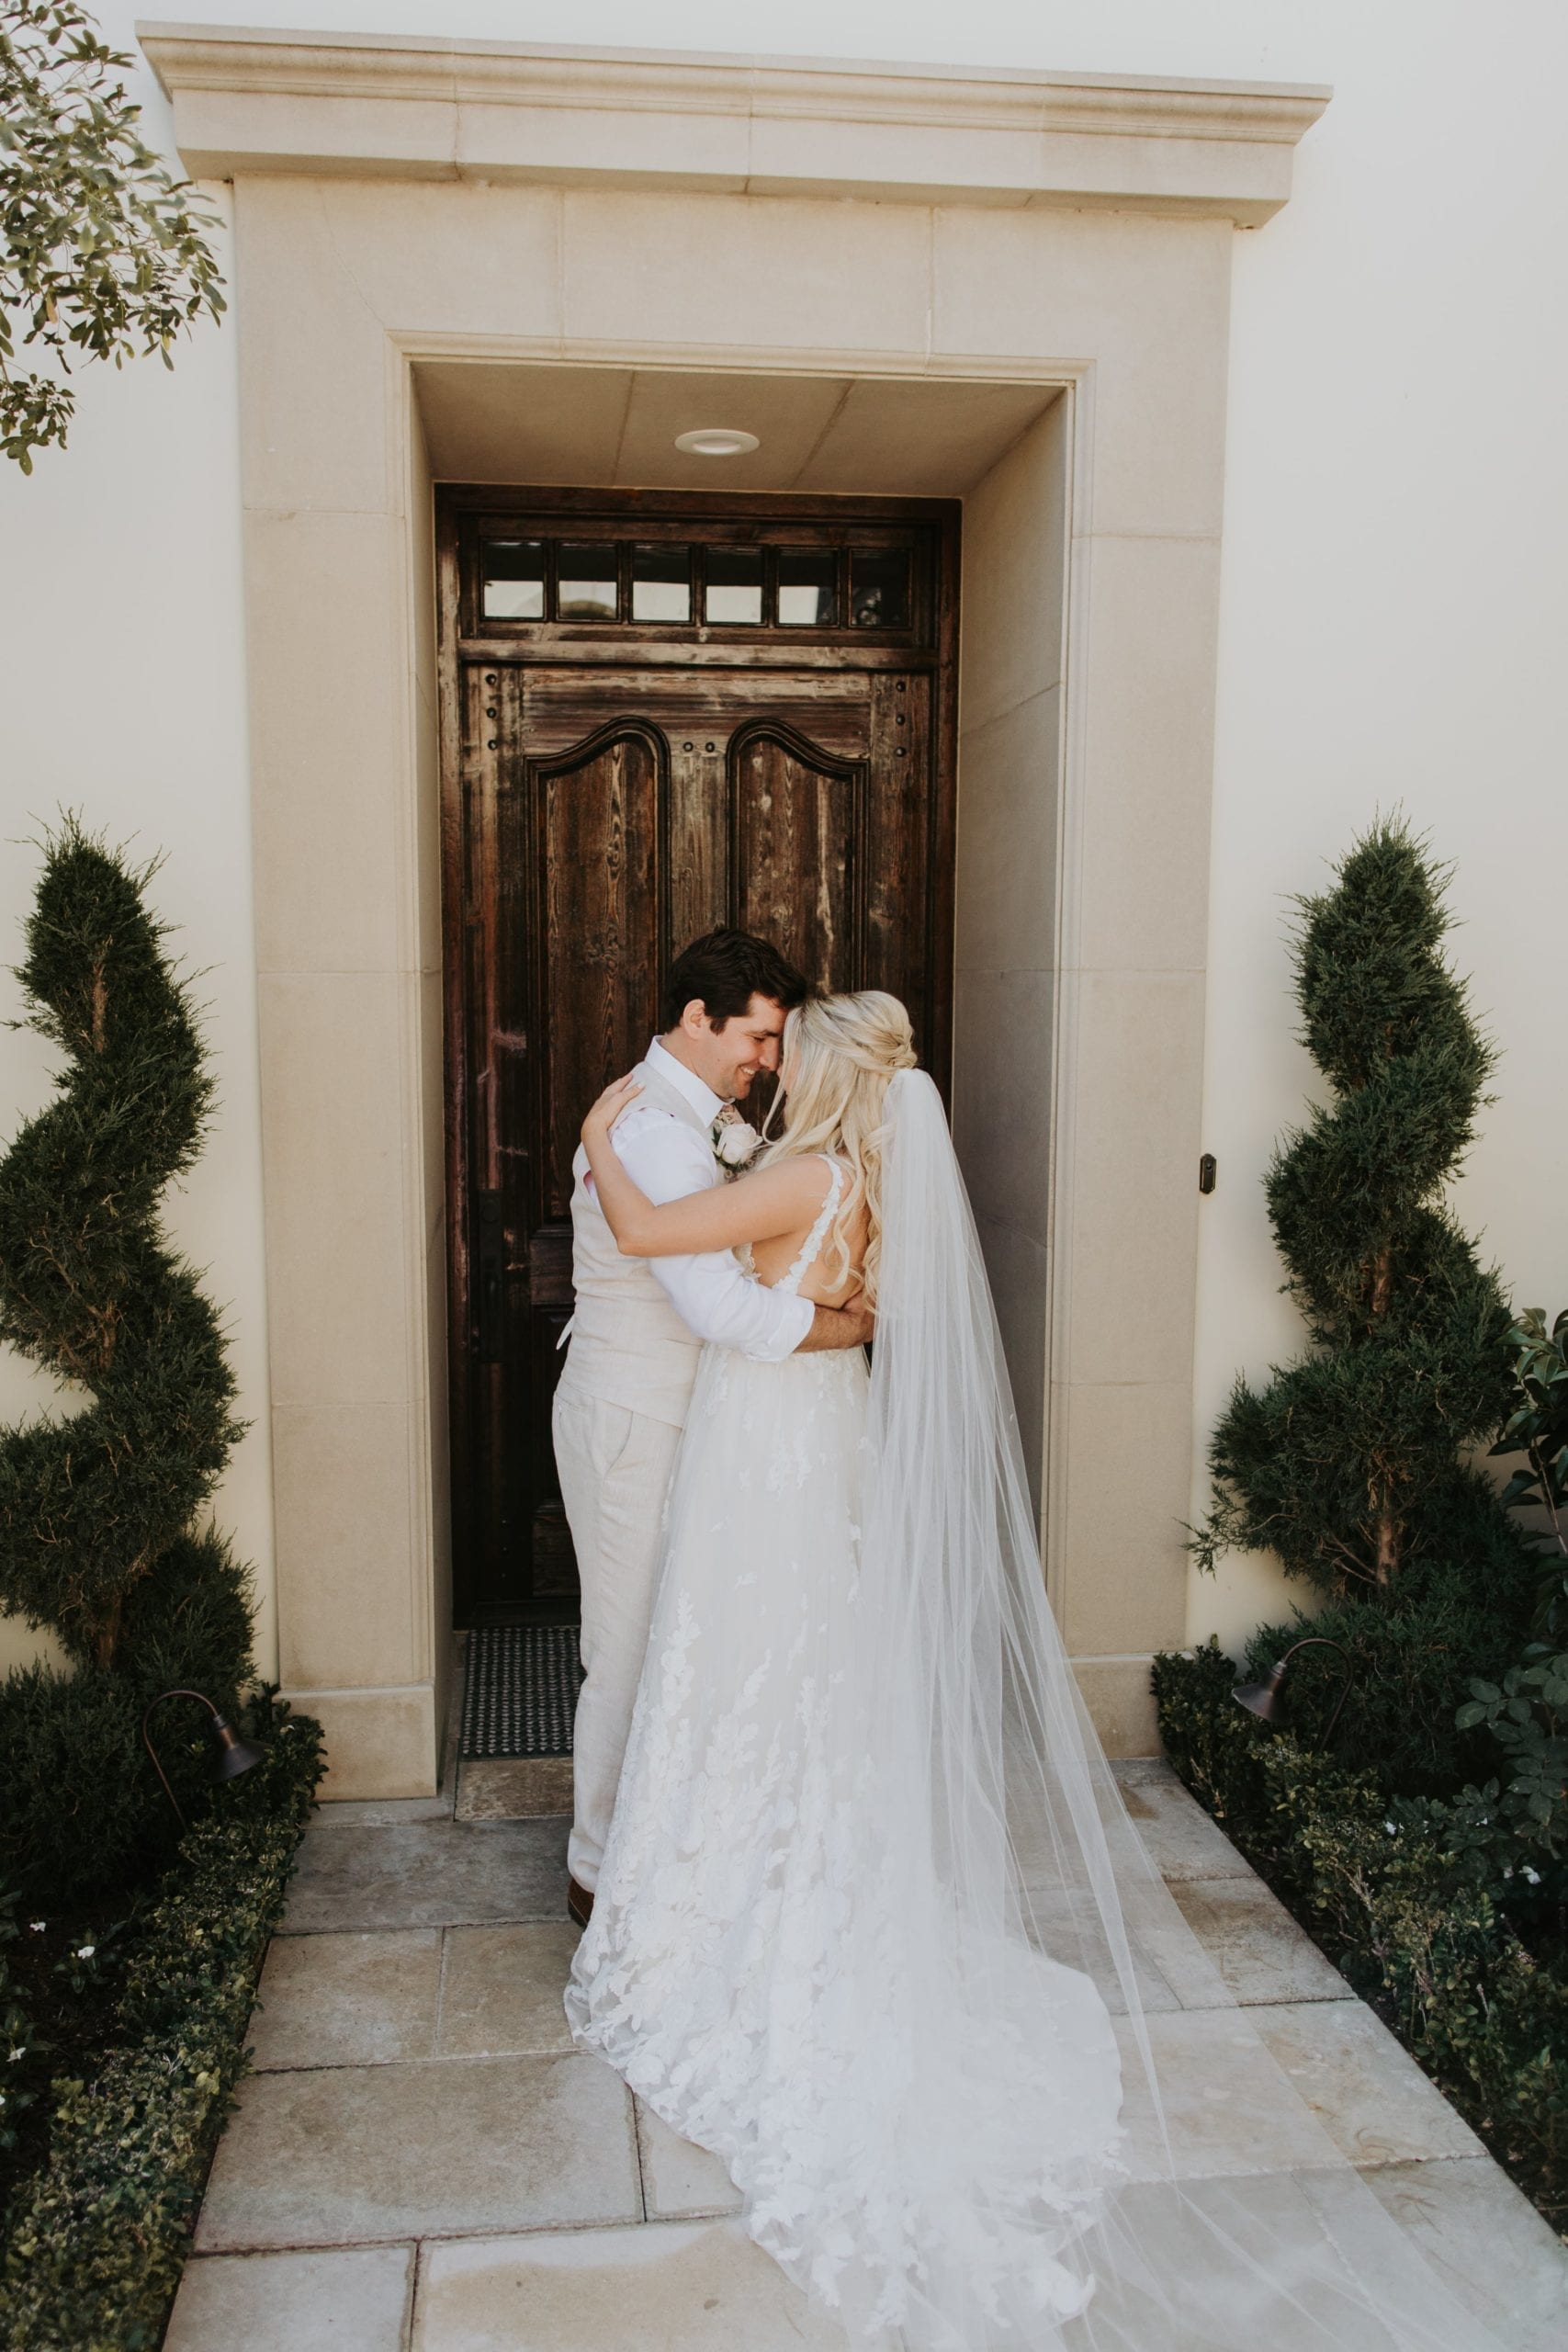 Real Weddings | Vinka Design | Real Brides Wearing Vinka Gowns | Camille and Aaron kissing in doorway dress flowing along ground